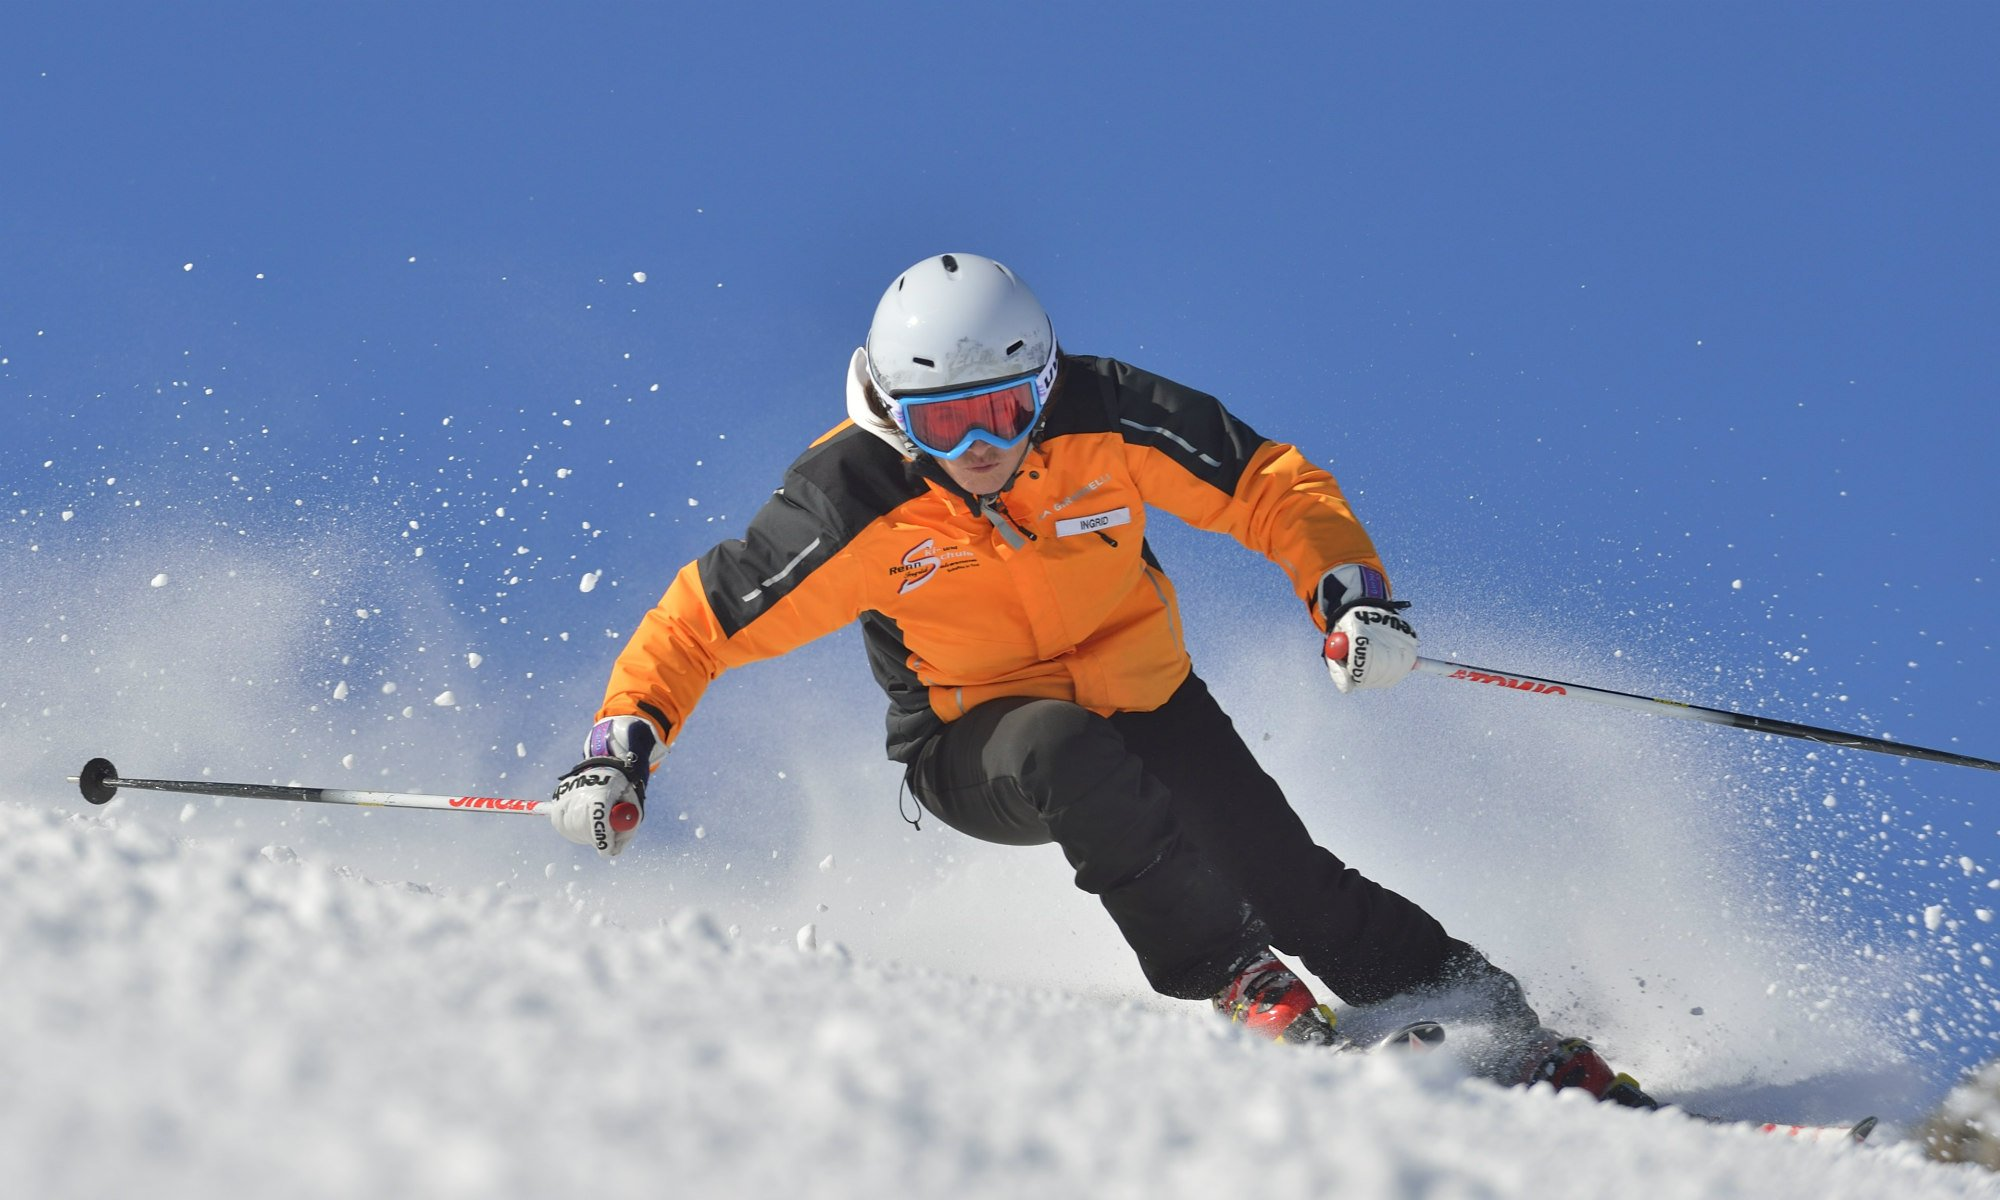 A skier carves with the right body posture.